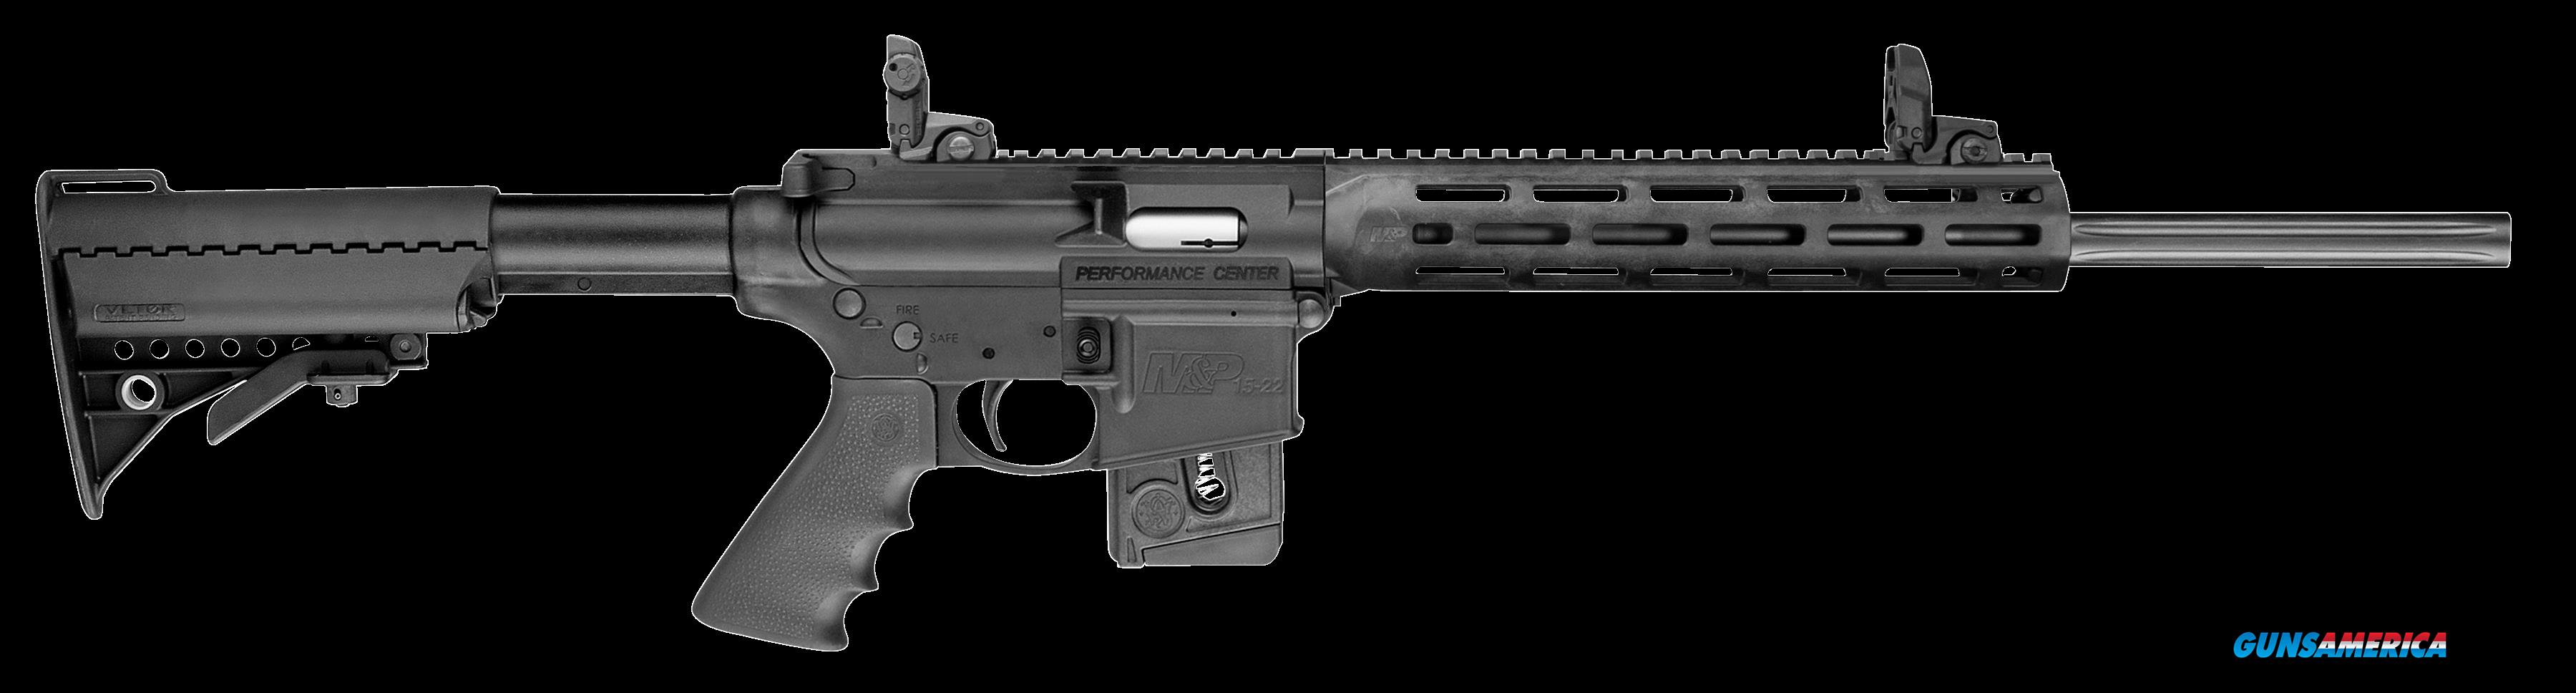 "Smith & Wesson 11507 M&P15-22 Sport *CA Compliant* Semi-Automatic 22 Long Rifle 18"" 10+1 6-Position  Guns > Rifles > S Misc Rifles"